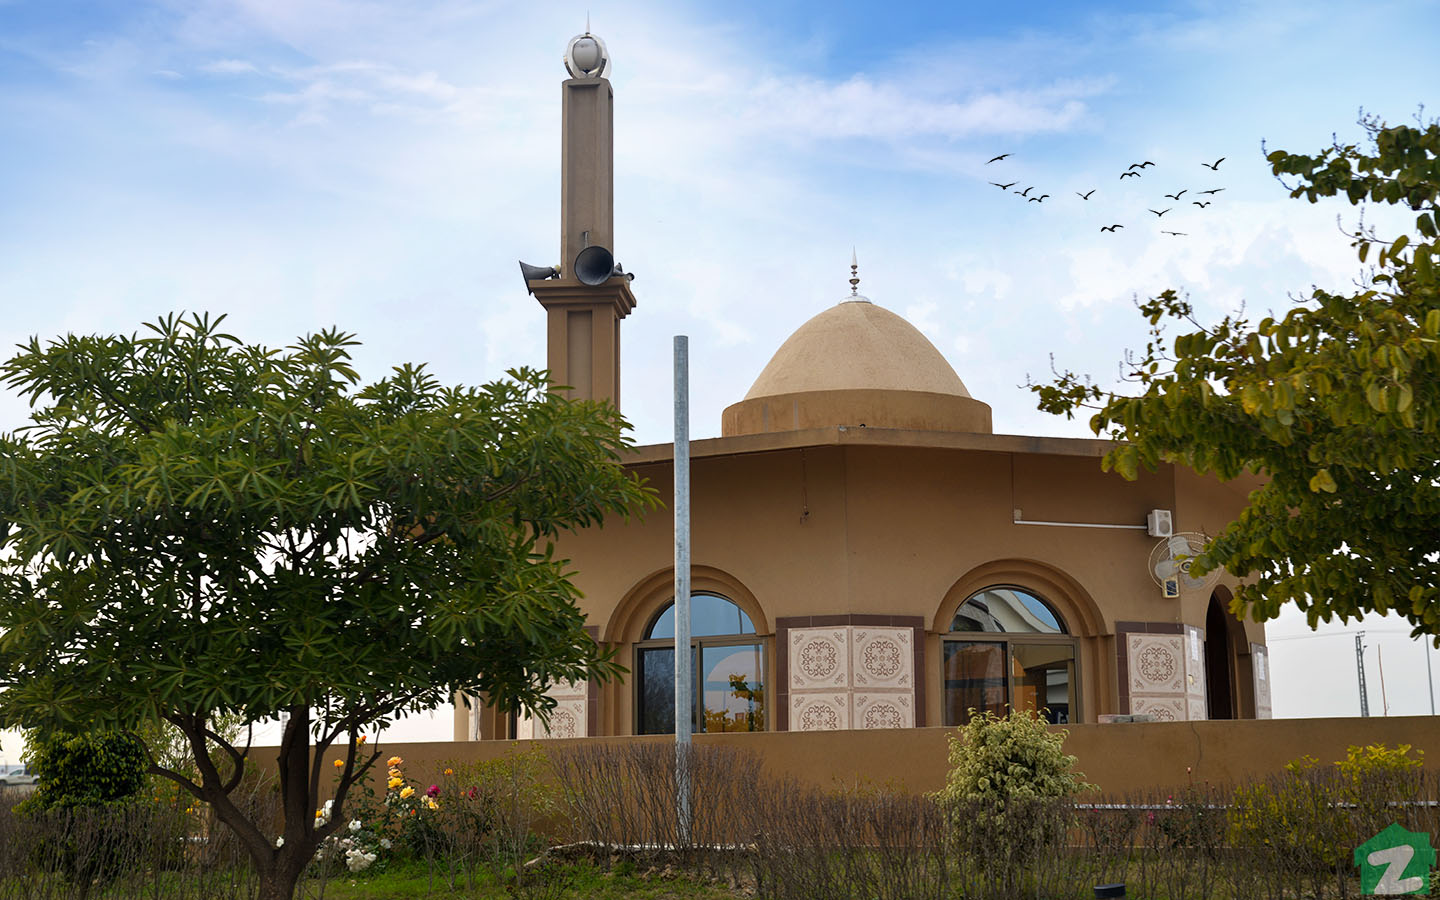 Mosque in Top City 1 Islamabad